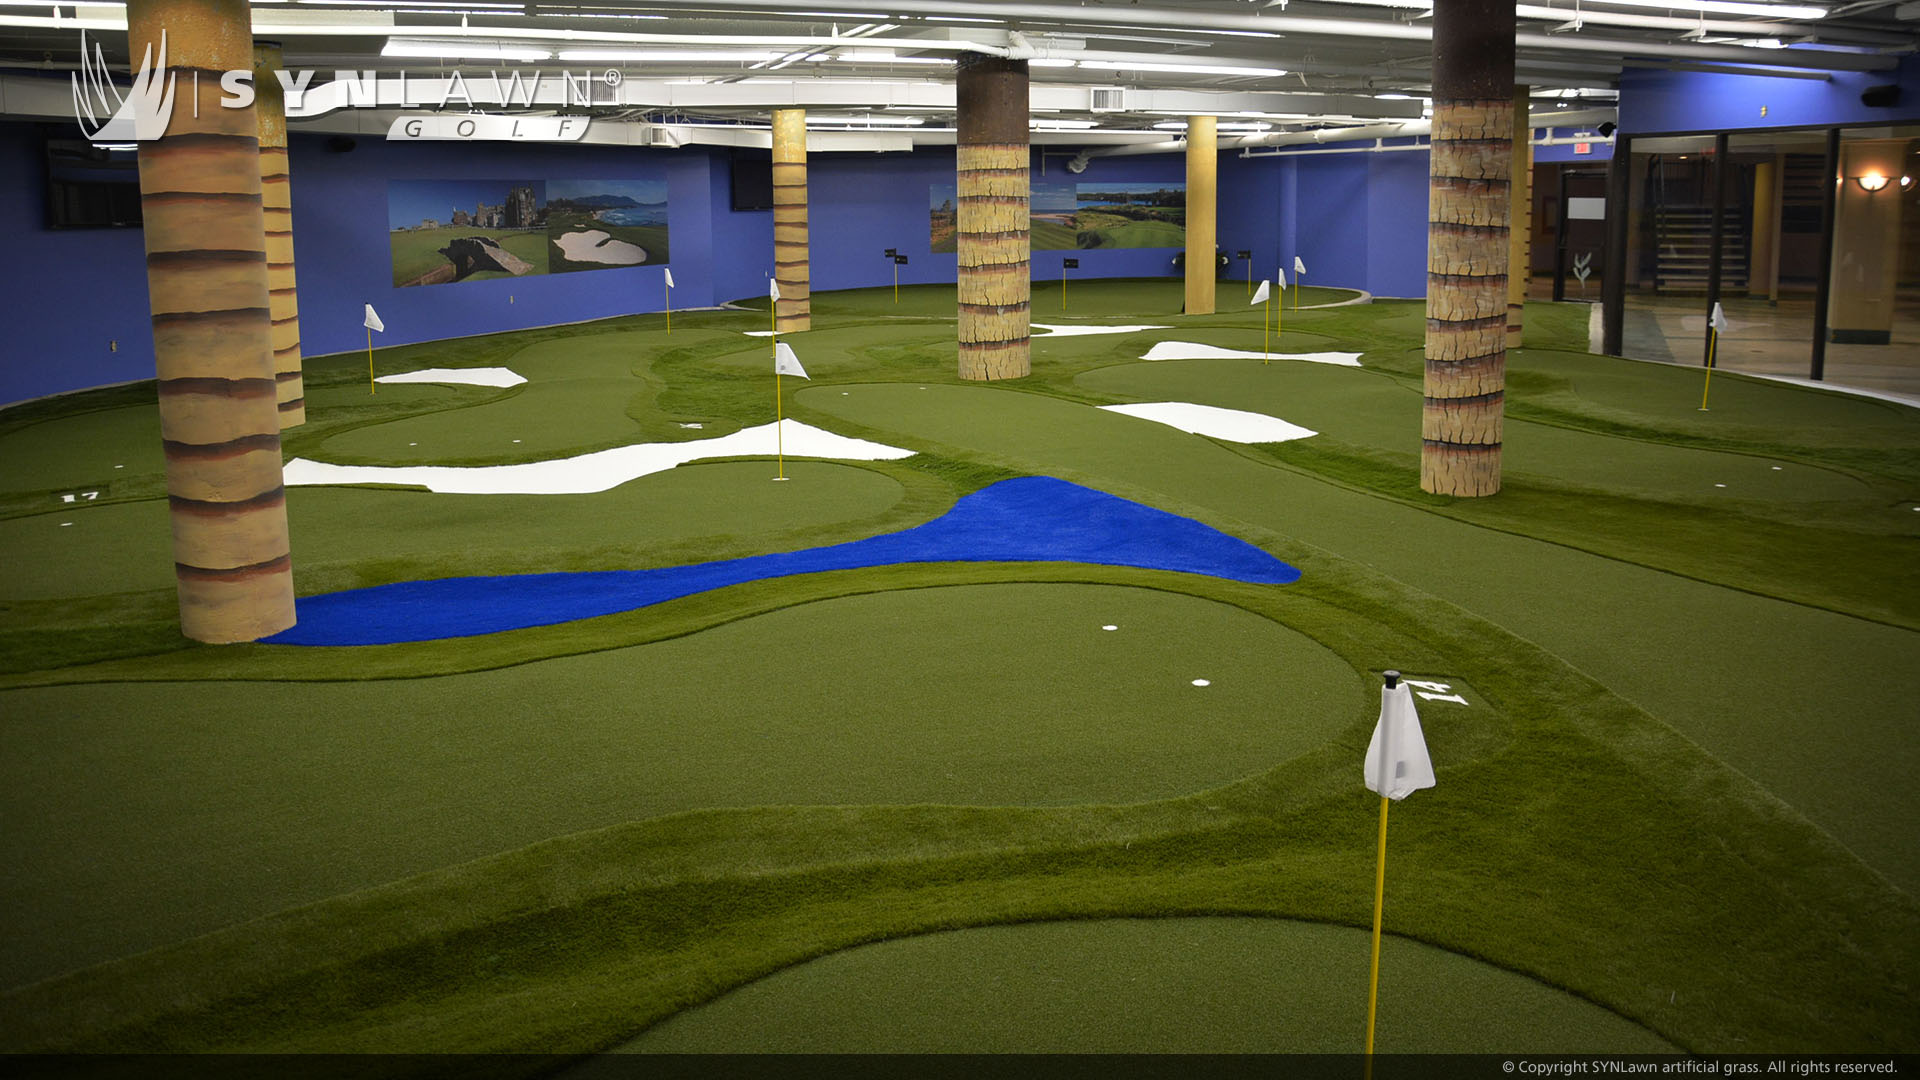 commercial putting green indoors, artificial grass